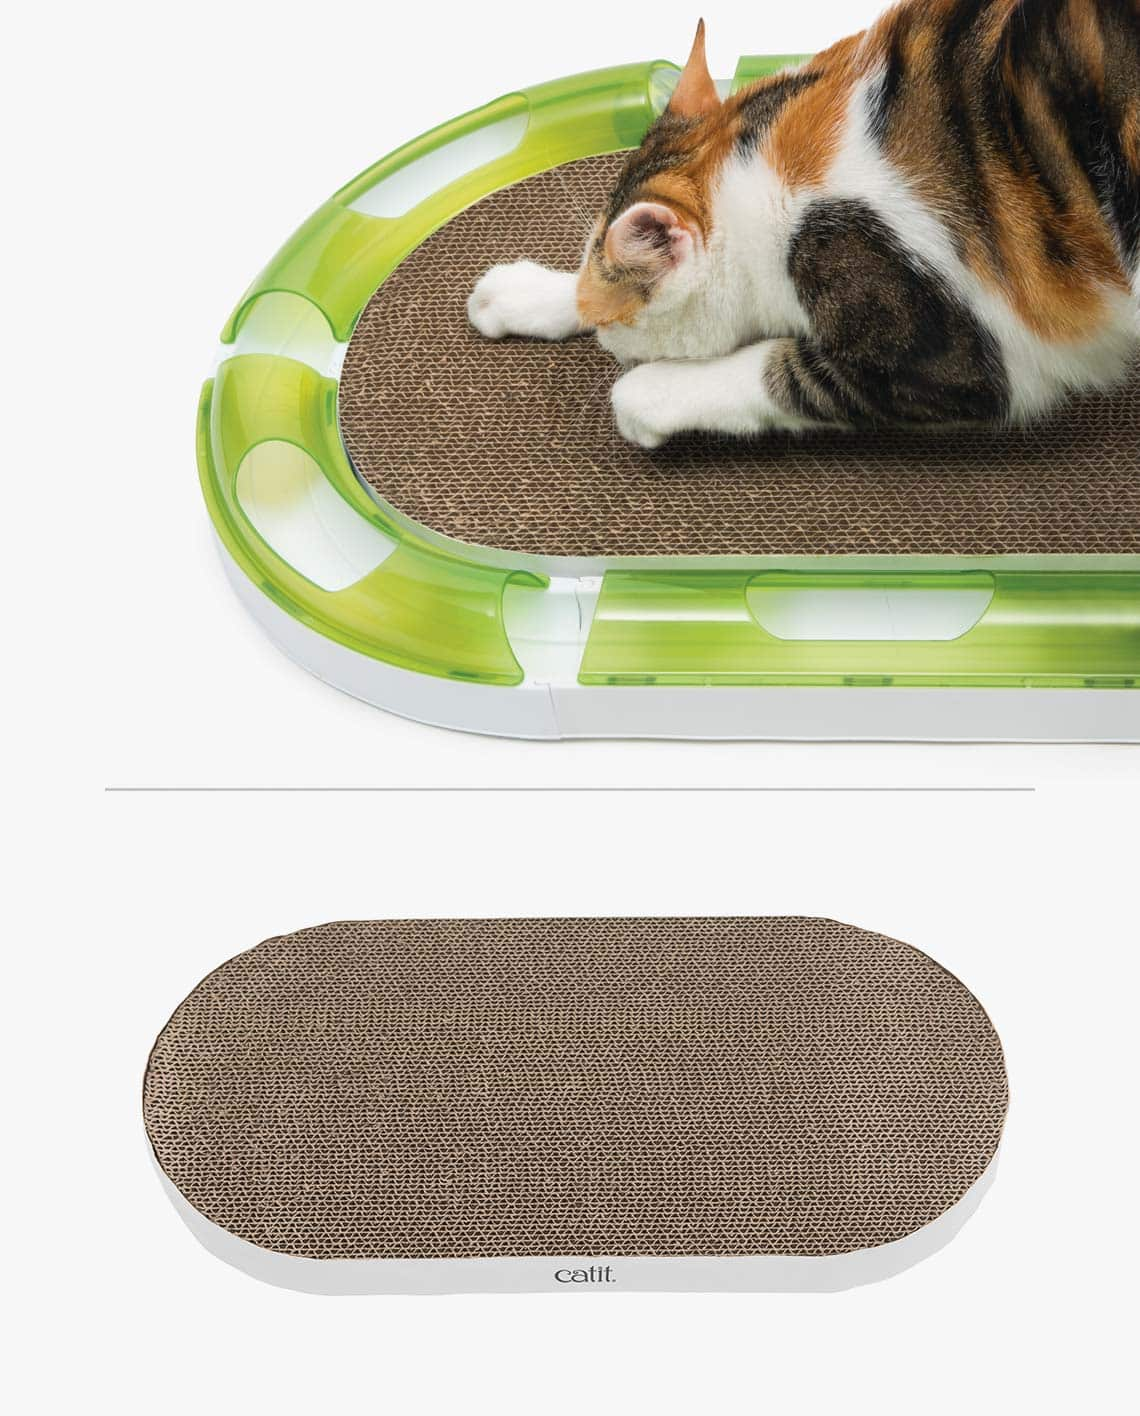 Pixi playing with the oval scratcher